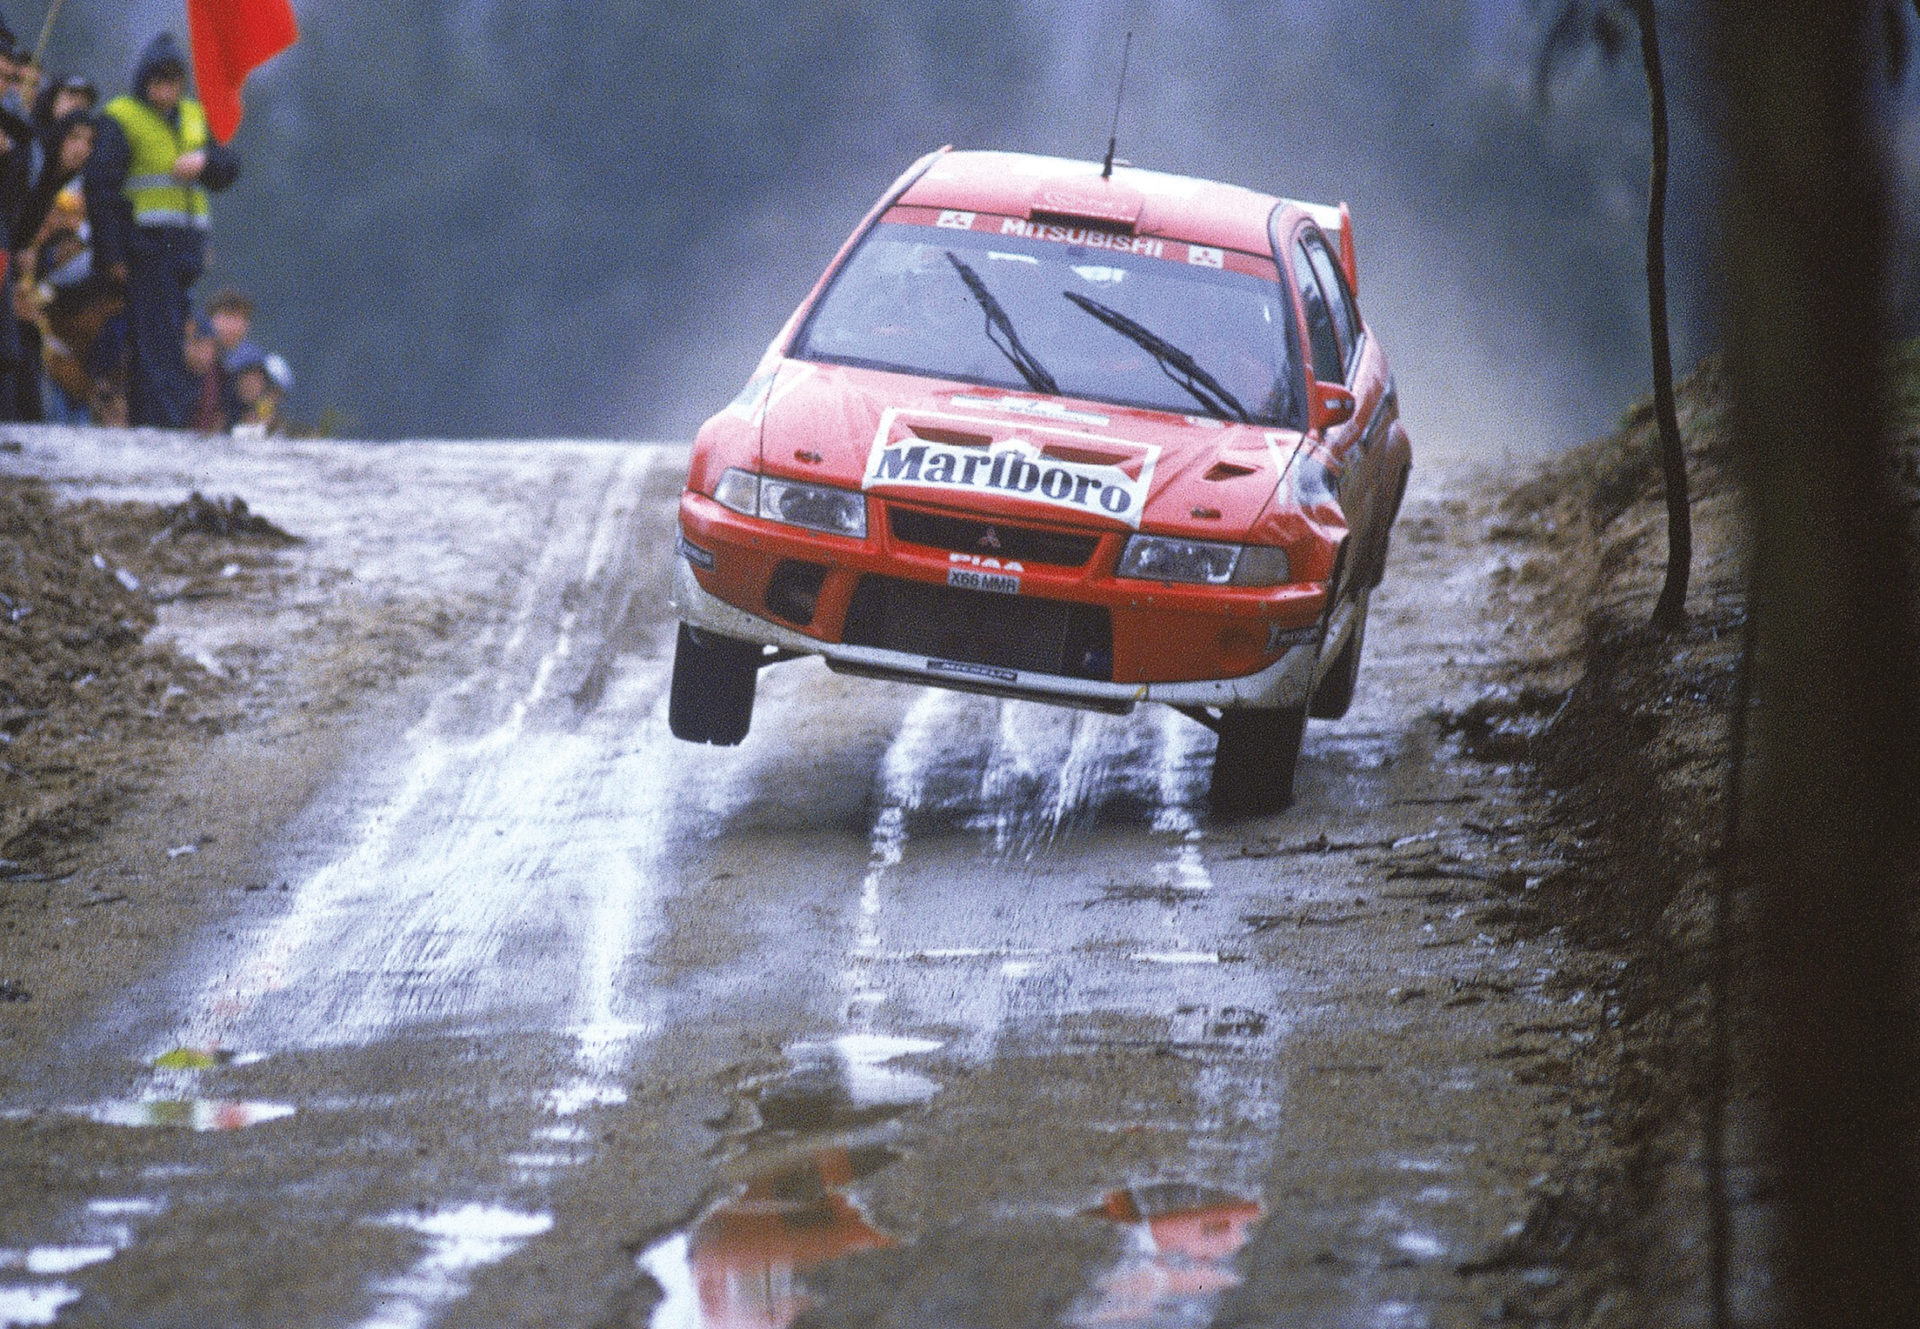 The Finn took the second of three wins in 2001 in his favoured Lancer Evo 6.5 at a rain-hit Portugal, beating long-time rival Carlos Sainz by a mere 8.6 seconds